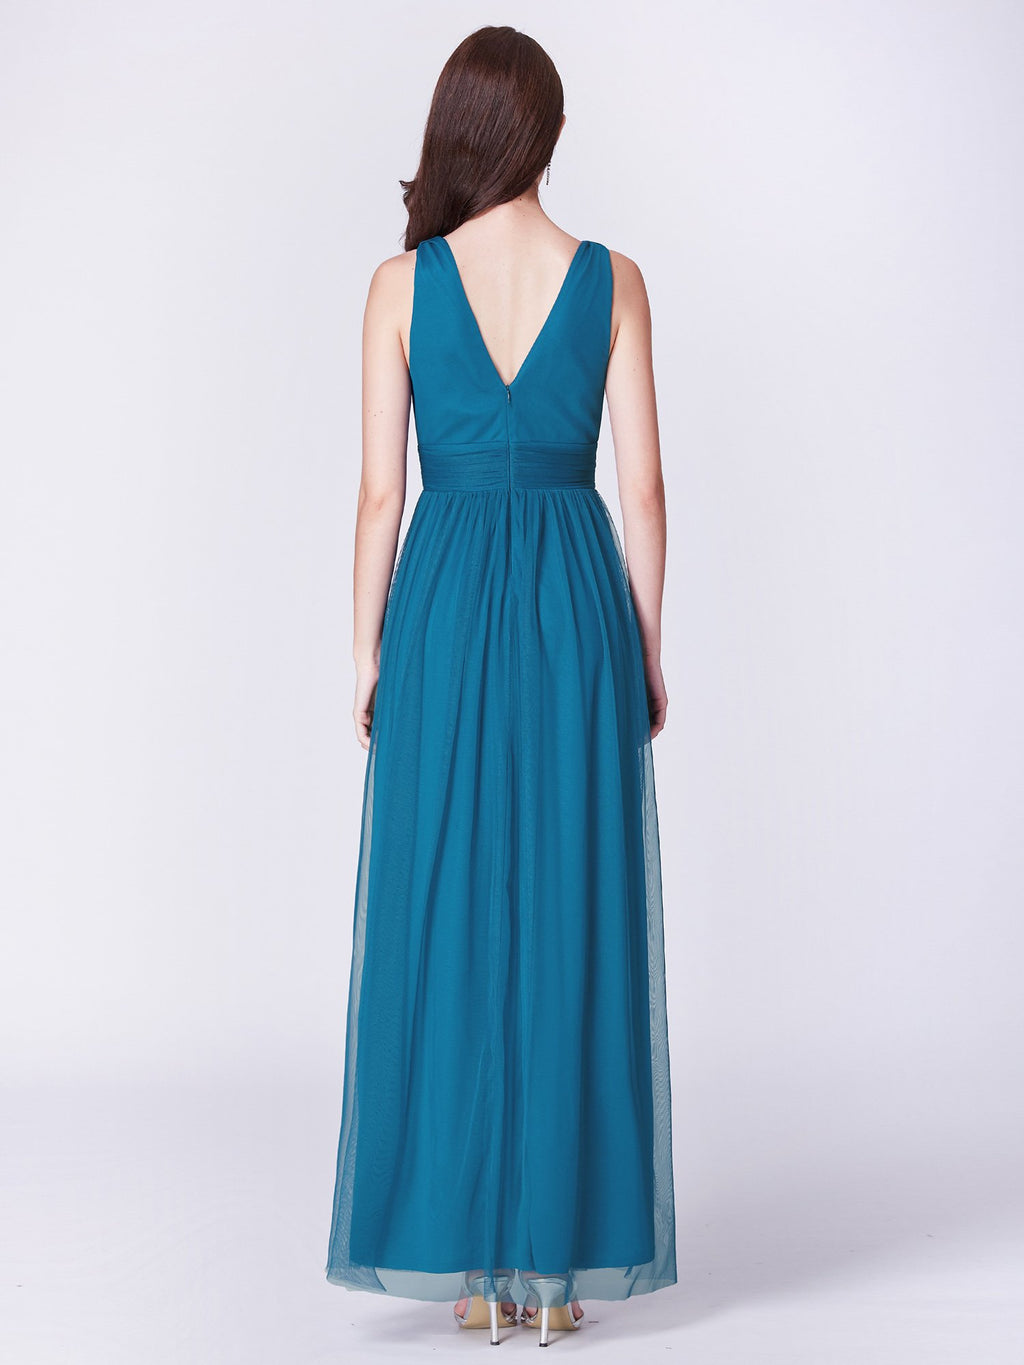 Long V Neck Gorgeous Dress Teal